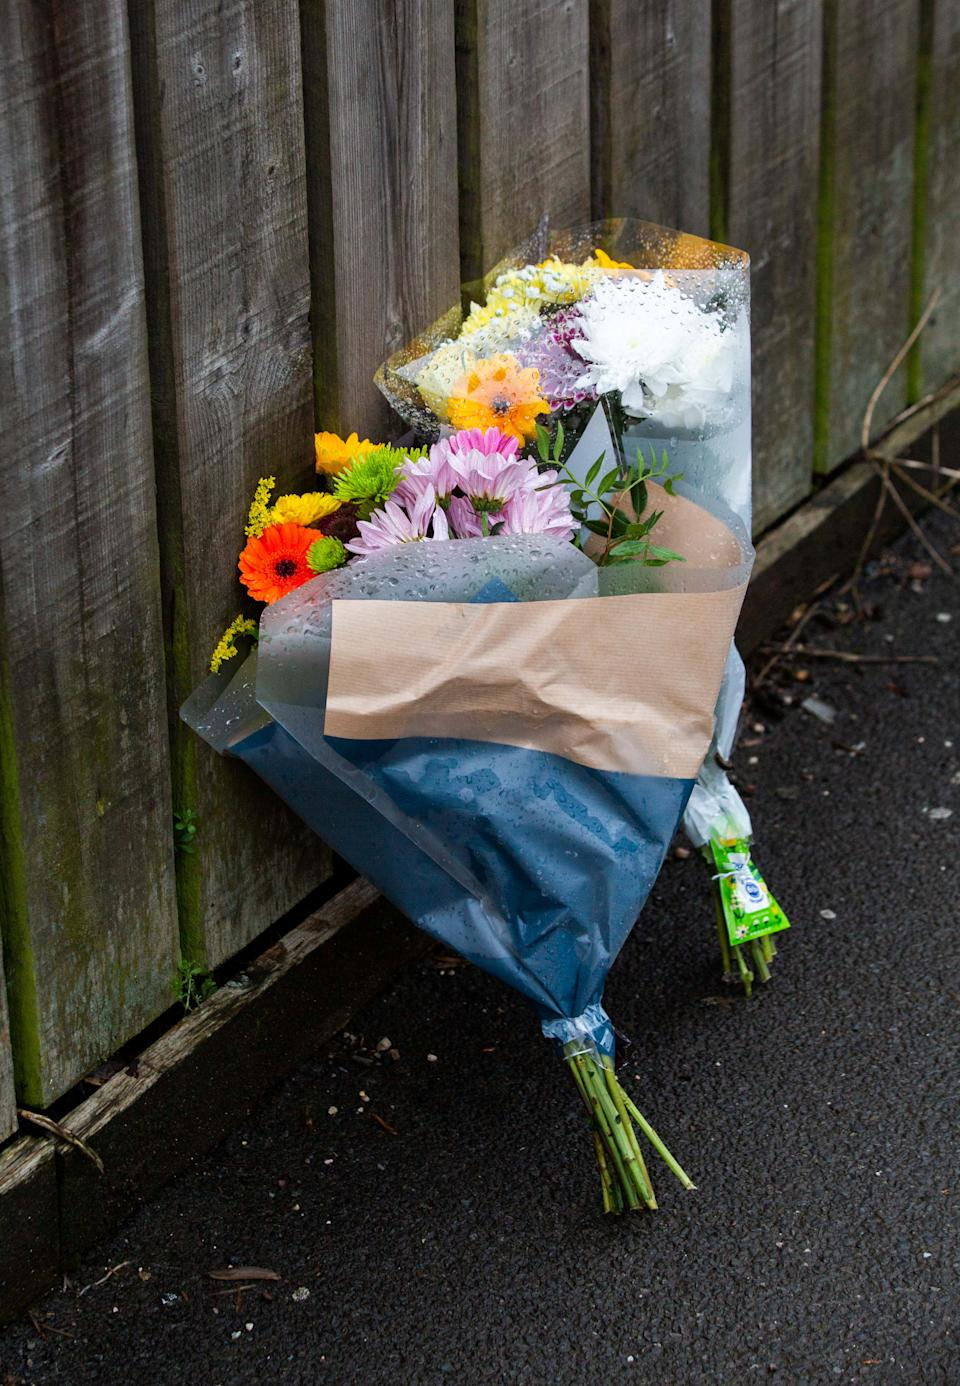 Floral tributes have been left by Clayton Road, Exeter after a fire claimed the lives of three people. 22nd February 2021.  A four-year-old girl and a couple have died in a house fire, police have said.  See SWNS story SWBRfire.  The girl, a man, 29, and a woman, 28, died following the fire in Clayton Road, Exeter.  Three other children who were in the house, two boys aged four and nine and a seven-year-old girl, are in a stable condition in hospital said officers.  Police called it a